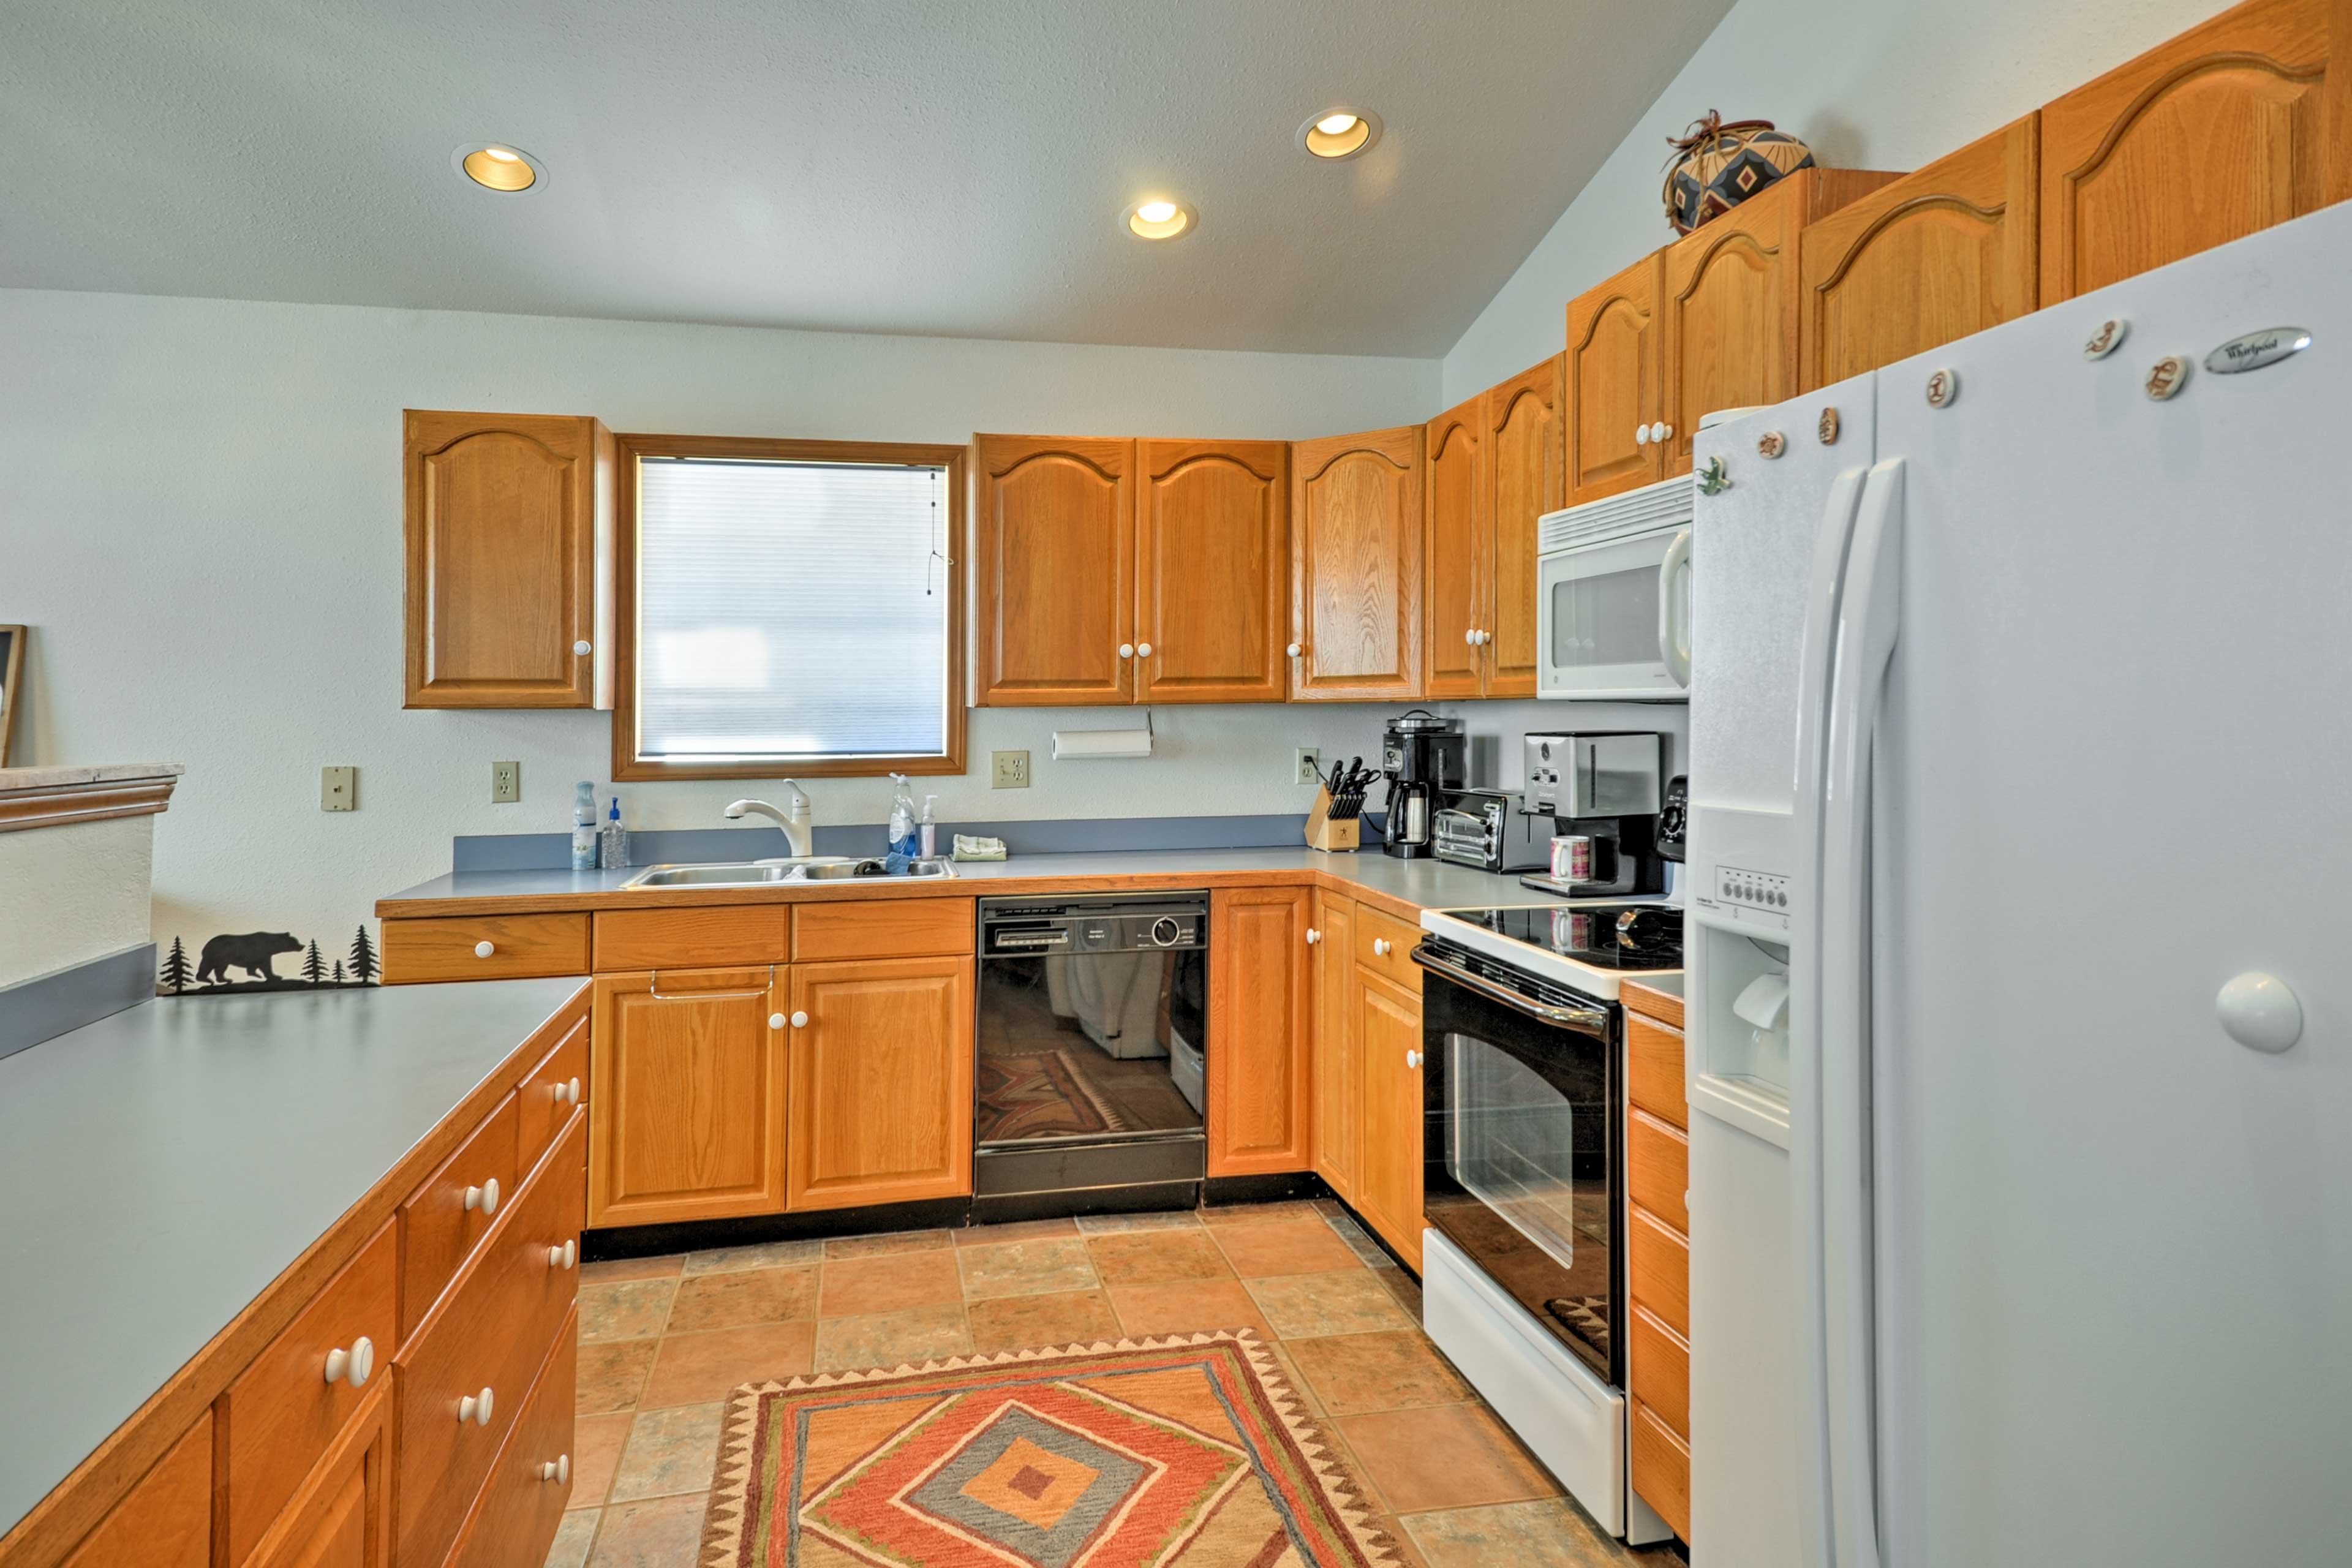 The kitchen comes fully equipped with all of your essential cooking appliances.